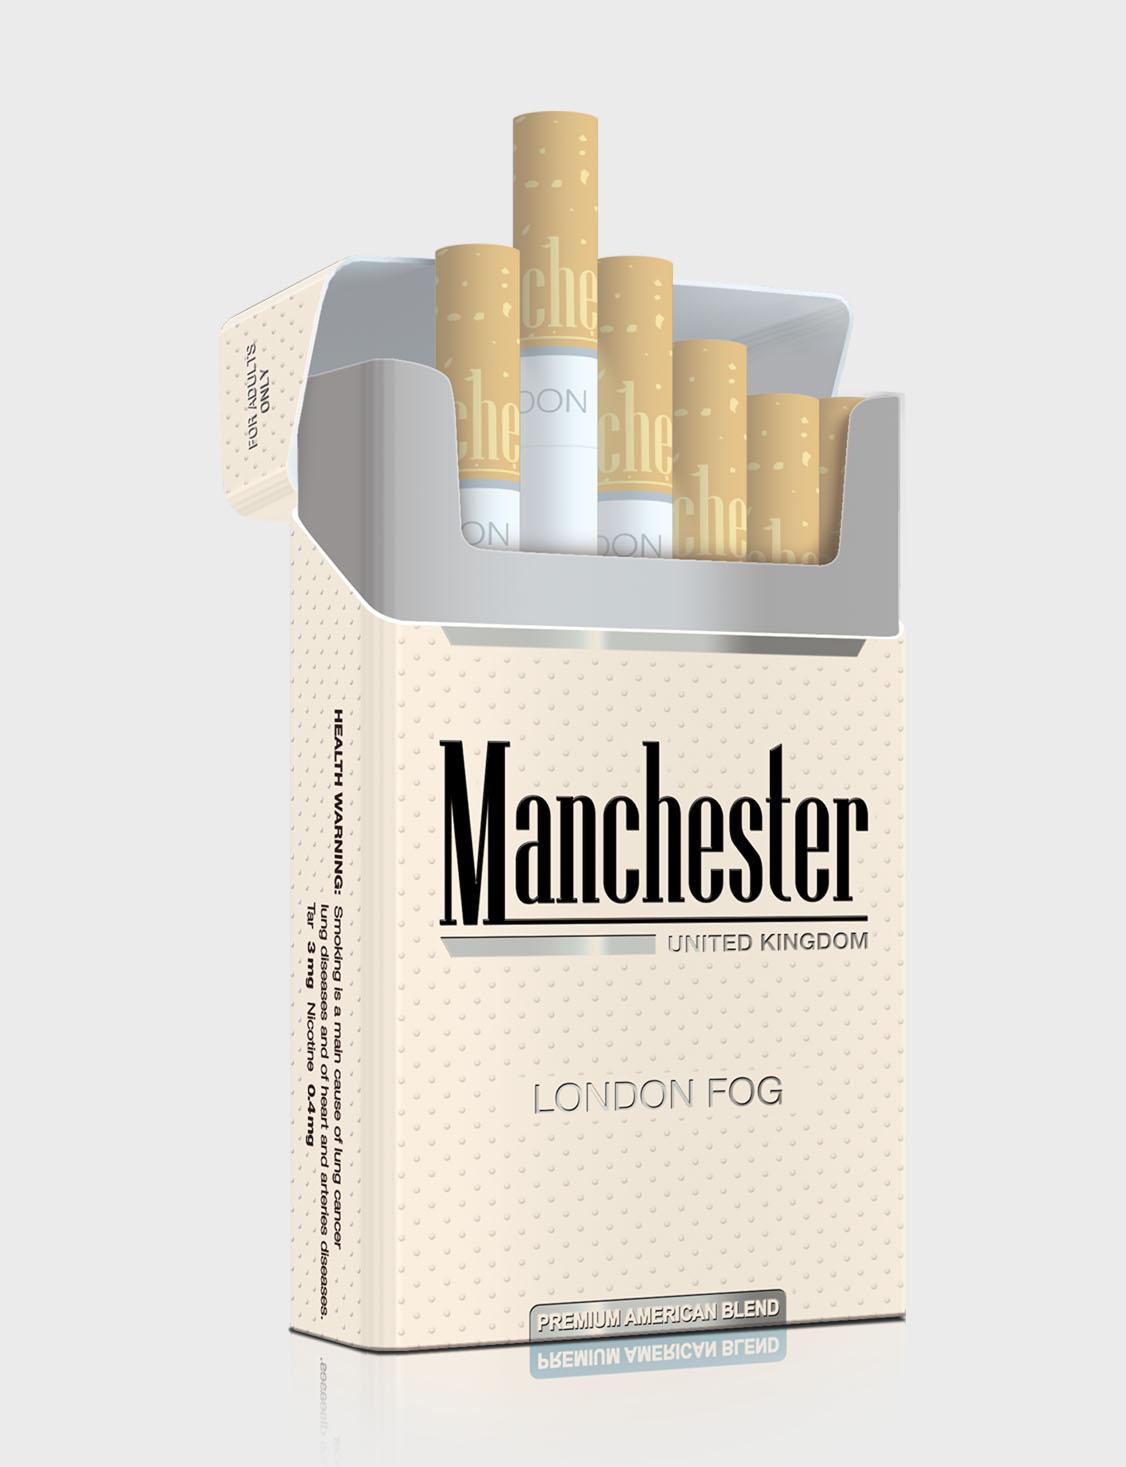 The Best Manchester United Kingdom Cigarettes Price In India